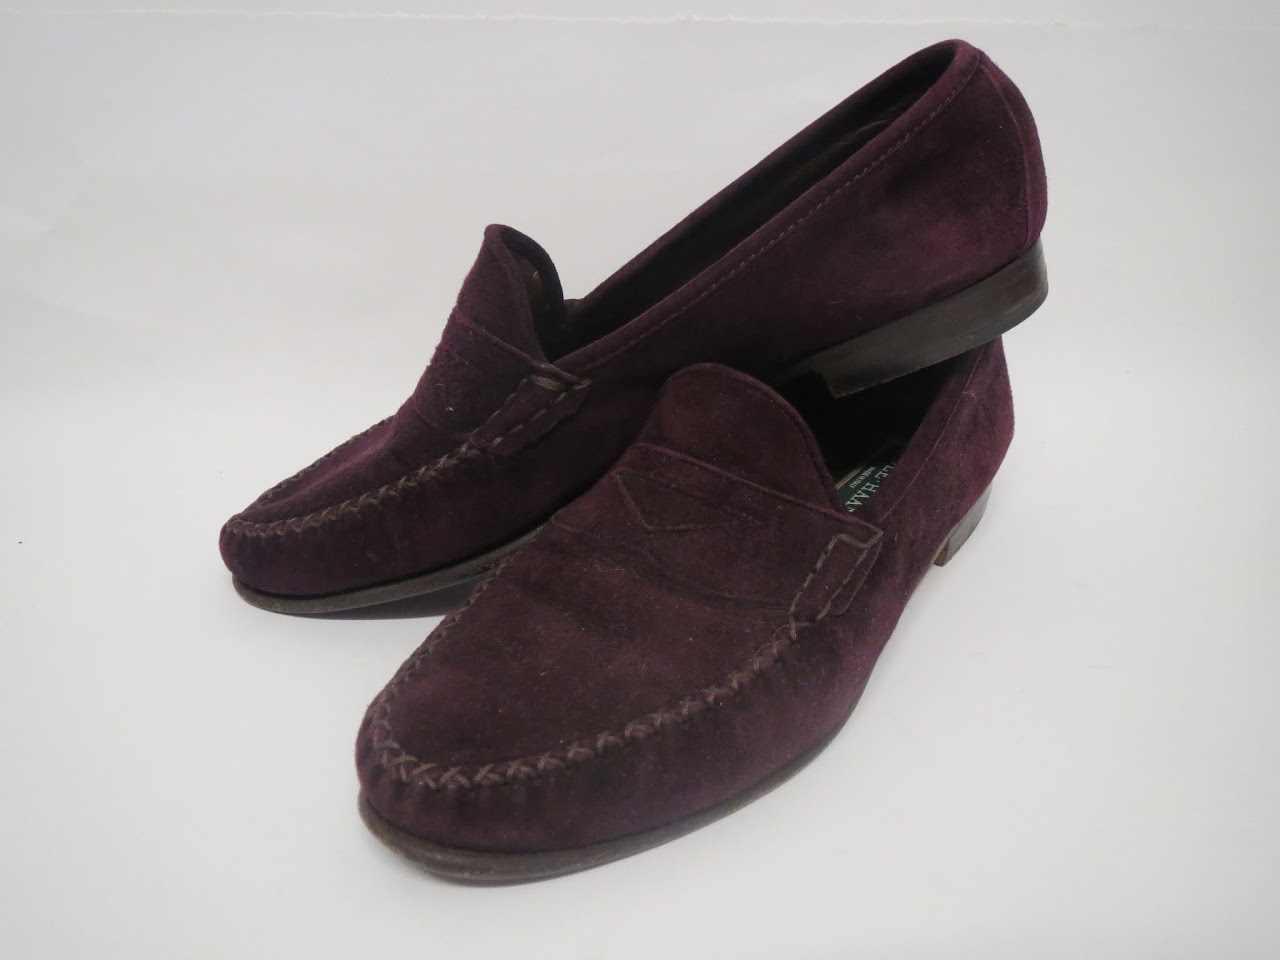 Vintage Cole Haan Burgundy Penny Loafers